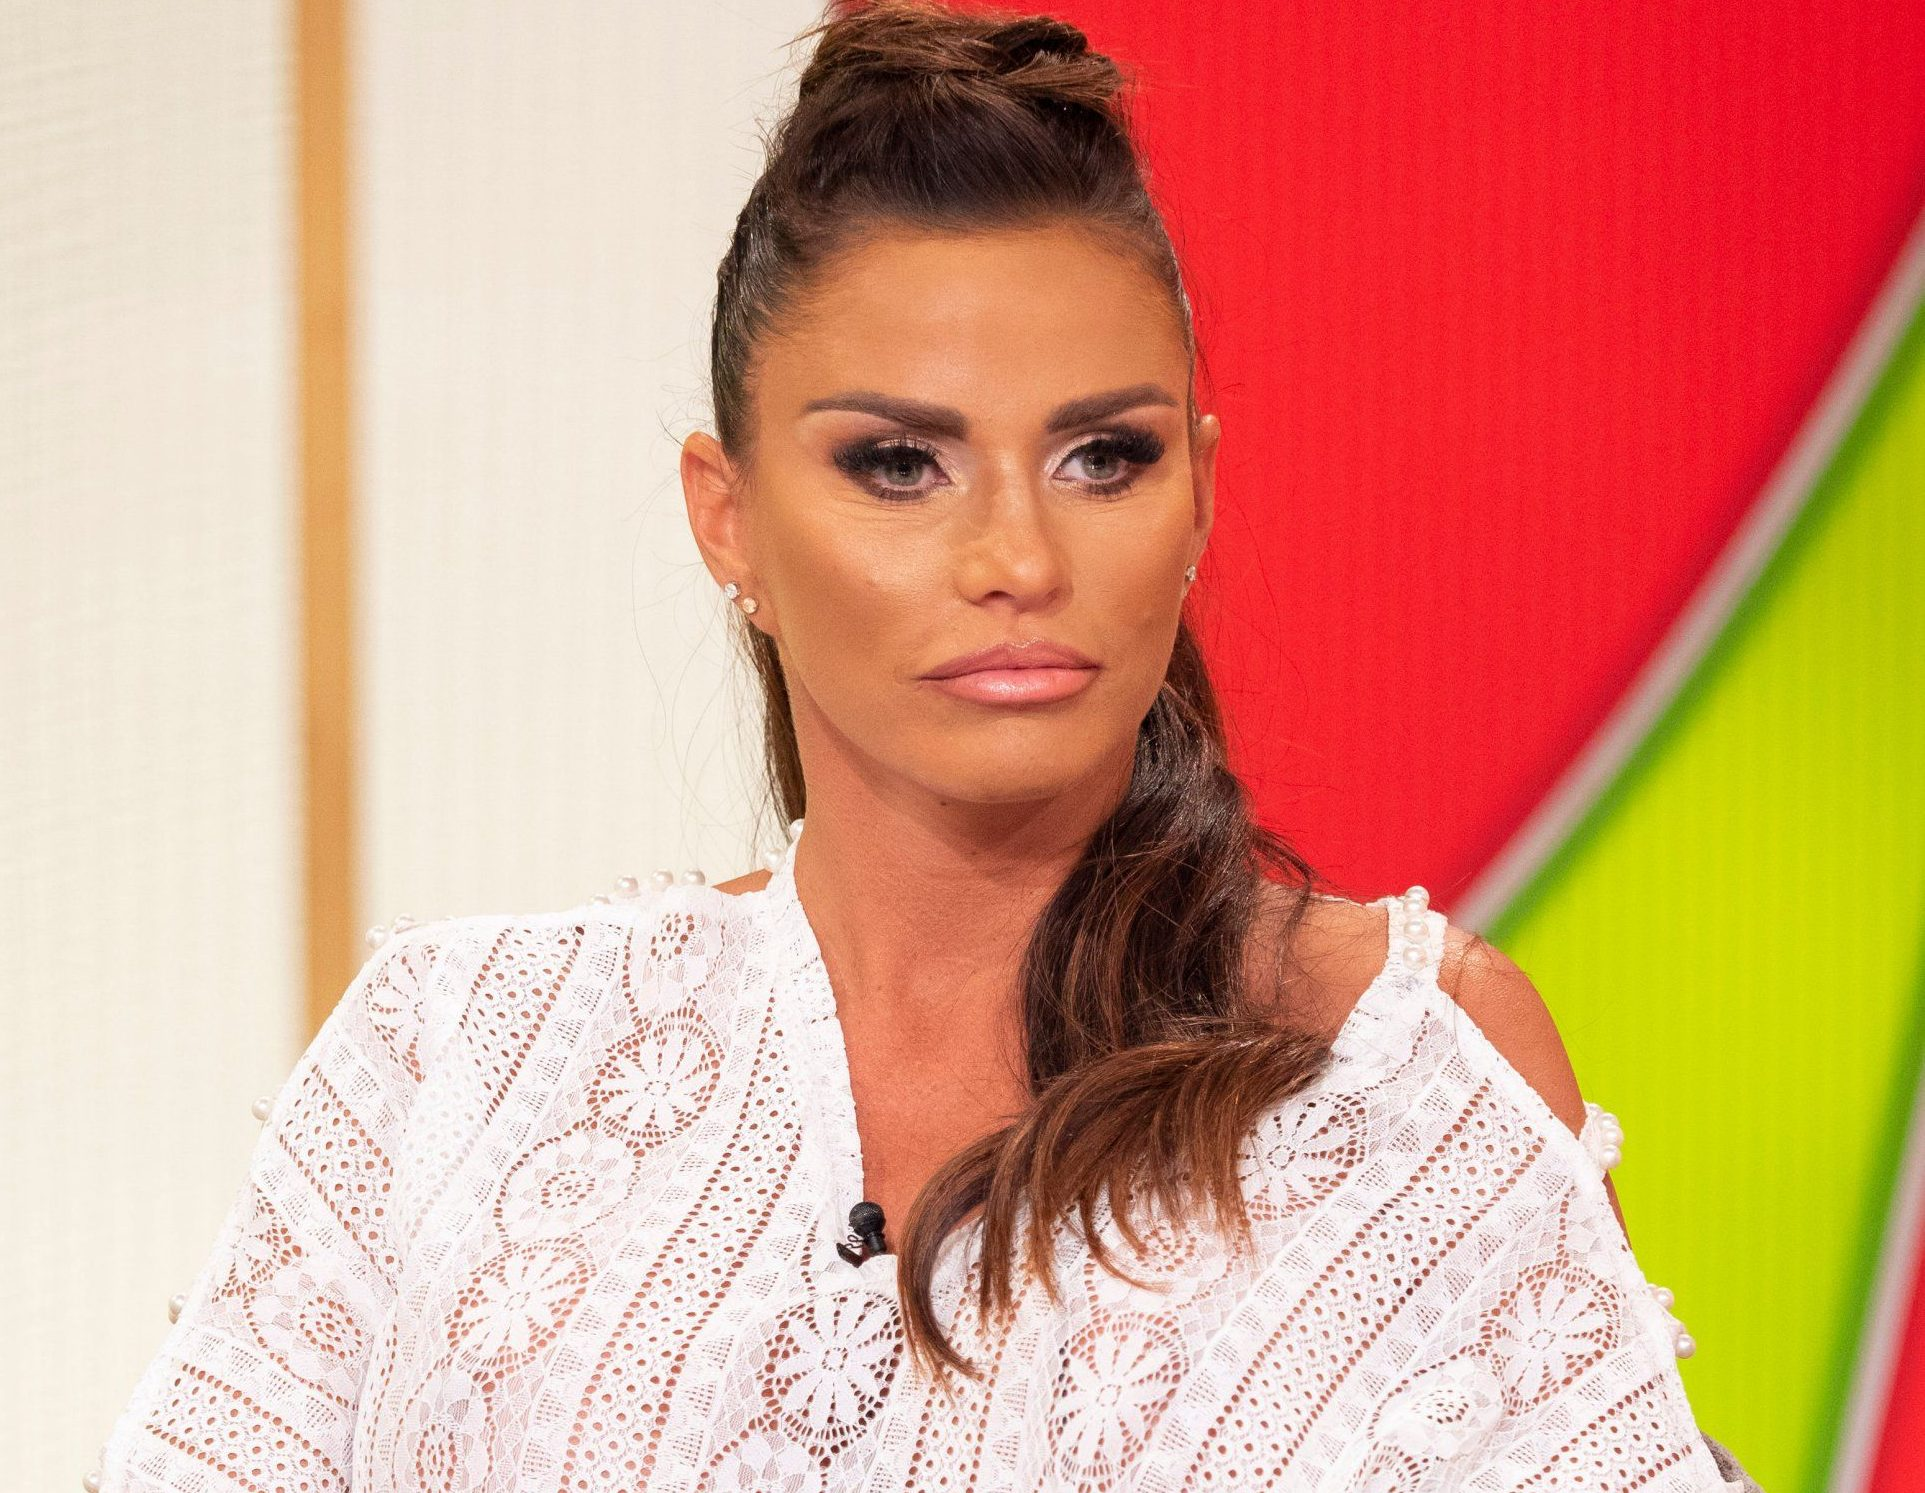 EDITORIAL USE ONLY. NO MERCHANDISING Mandatory Credit: Photo by Ken McKay/ITV/REX/Shutterstock (9766456cq) Katie Price 'Loose Women' TV show, London, UK - 20 Jul 2018